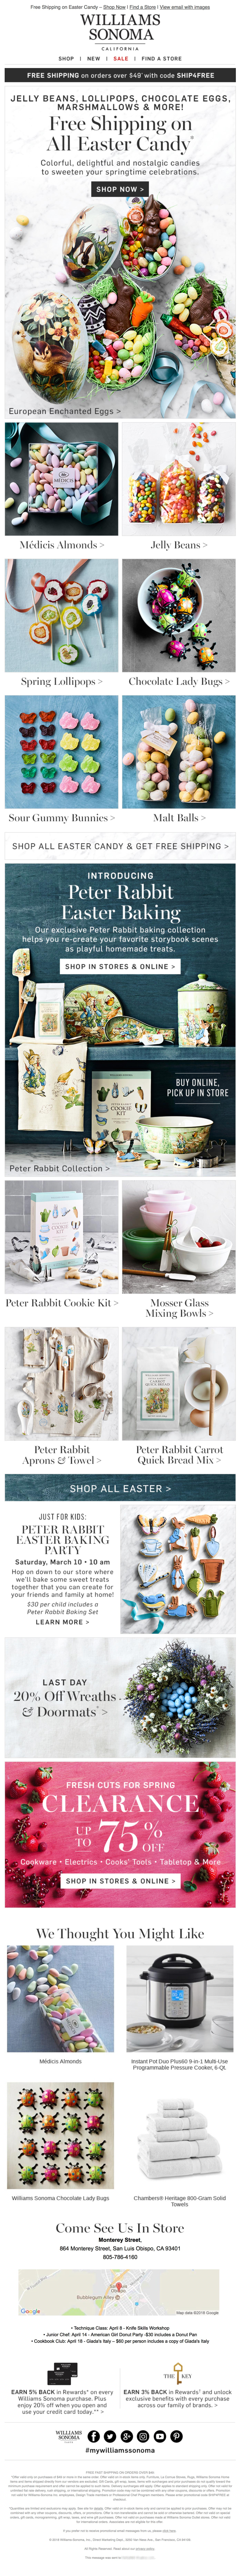 Williams Sonoma: Celebrate Spring Email